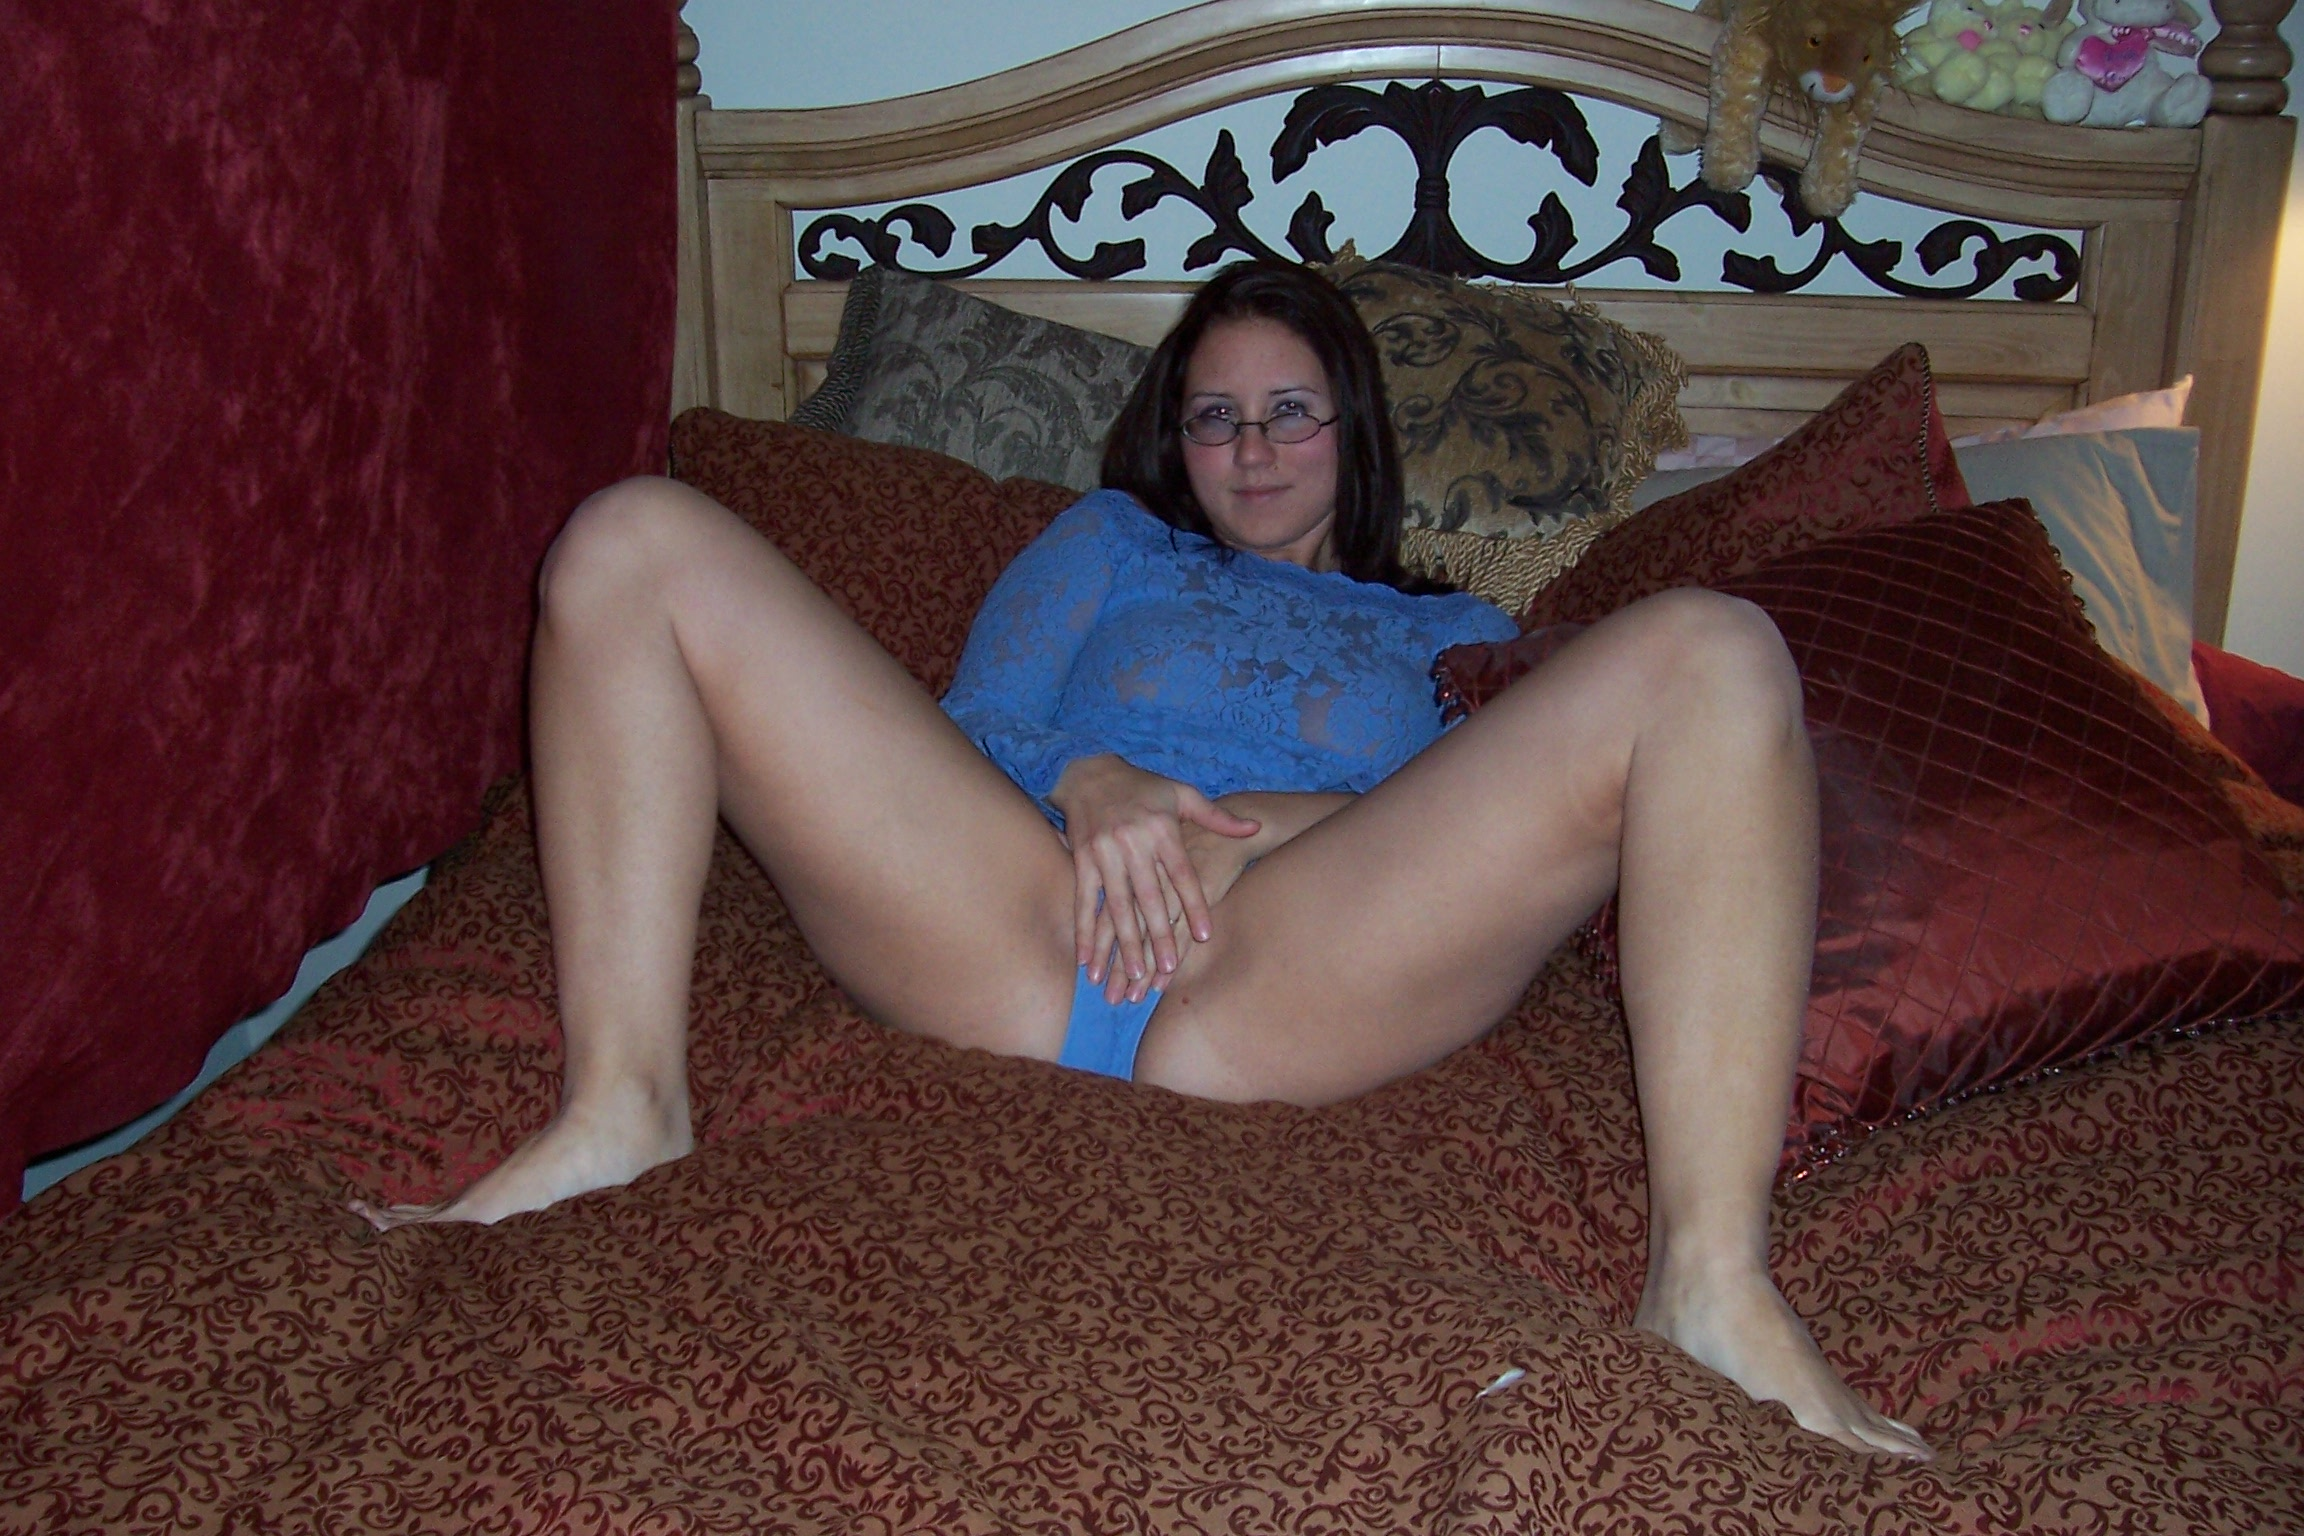 Amateur wives posing nude consider, that